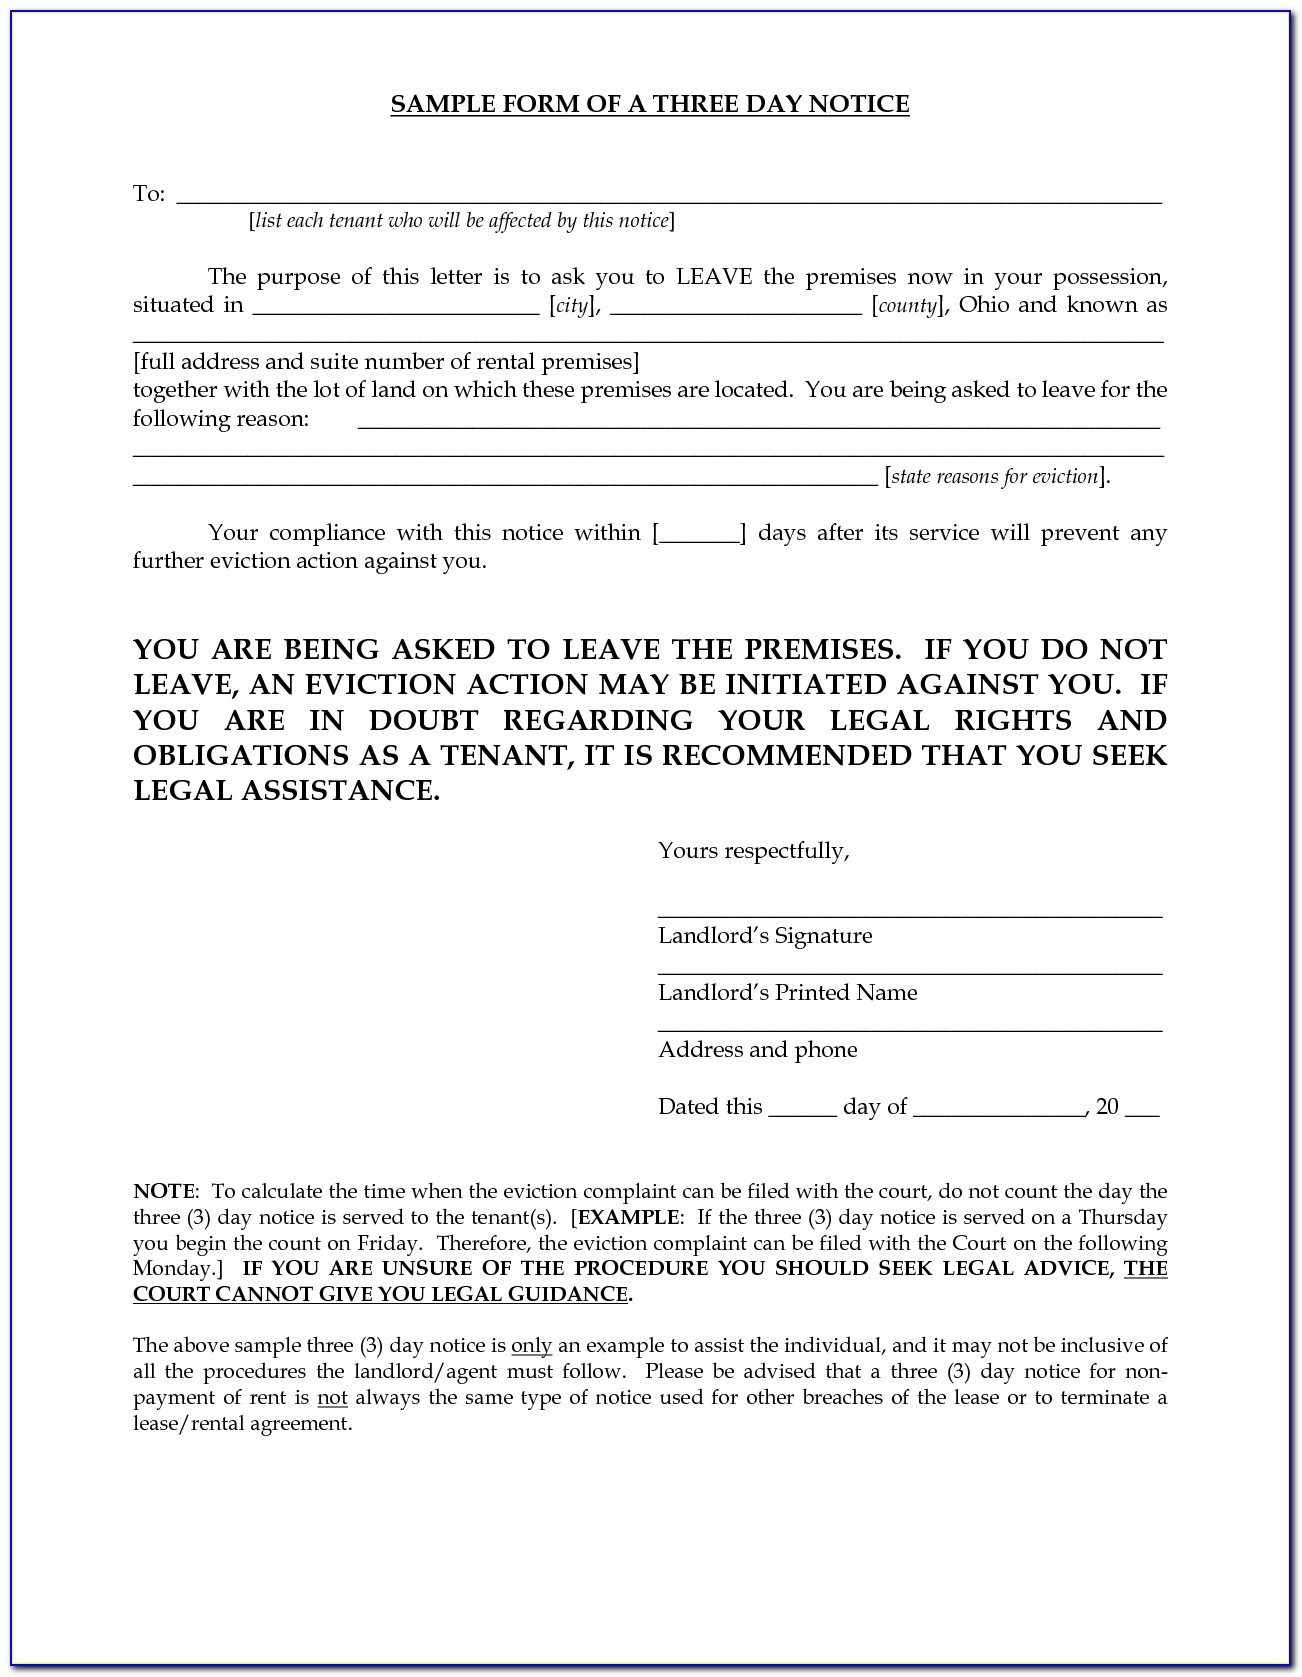 Franklin County Ohio Eviction Forms